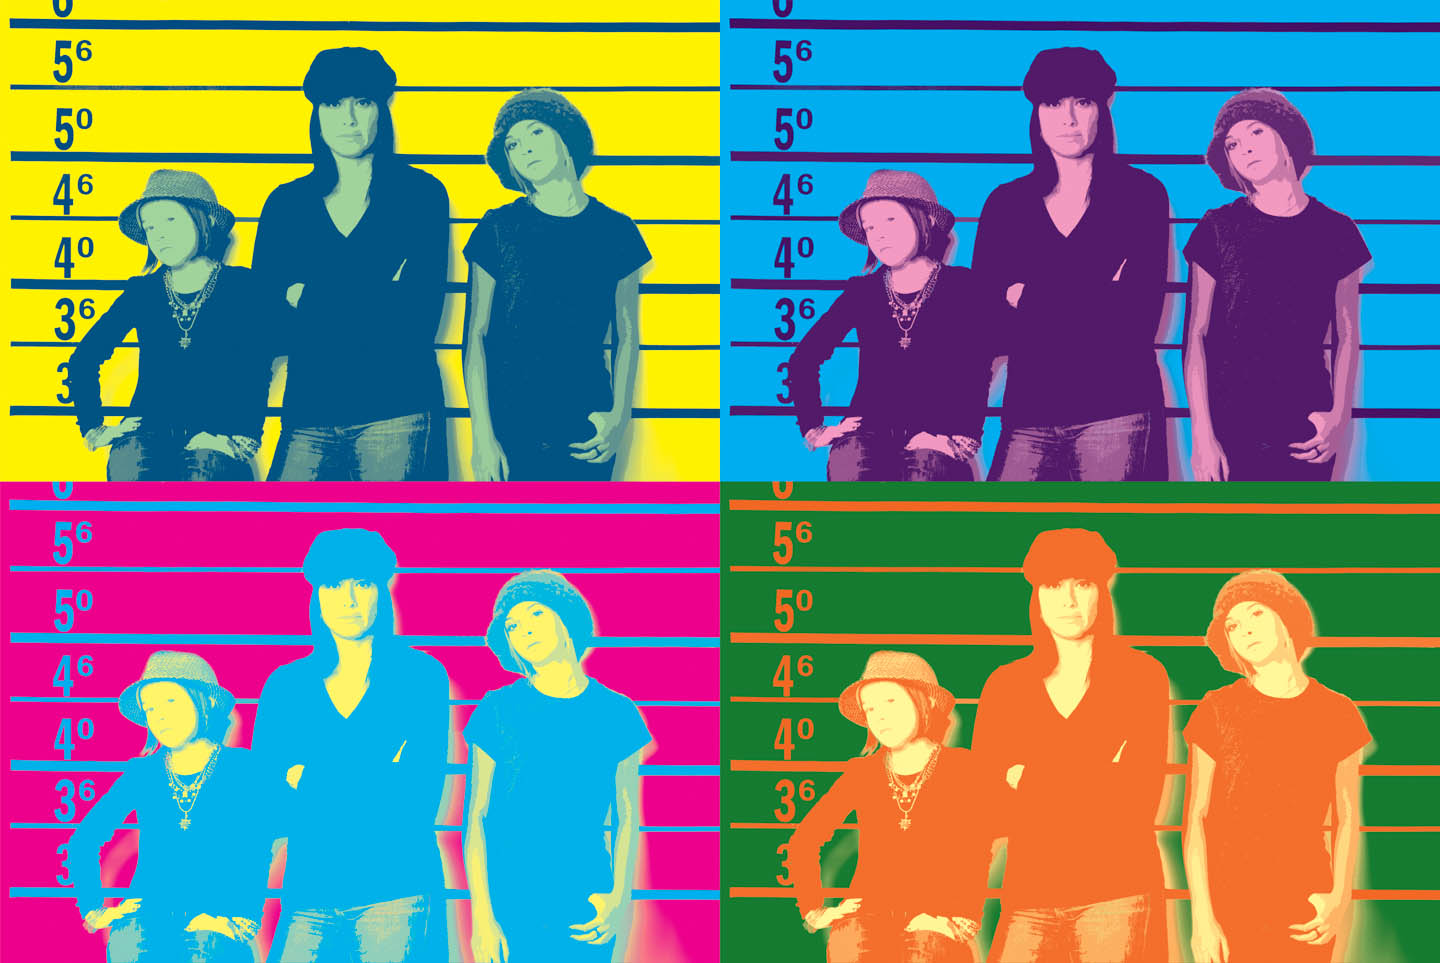 Andy Warhol portrait meets the police lineup